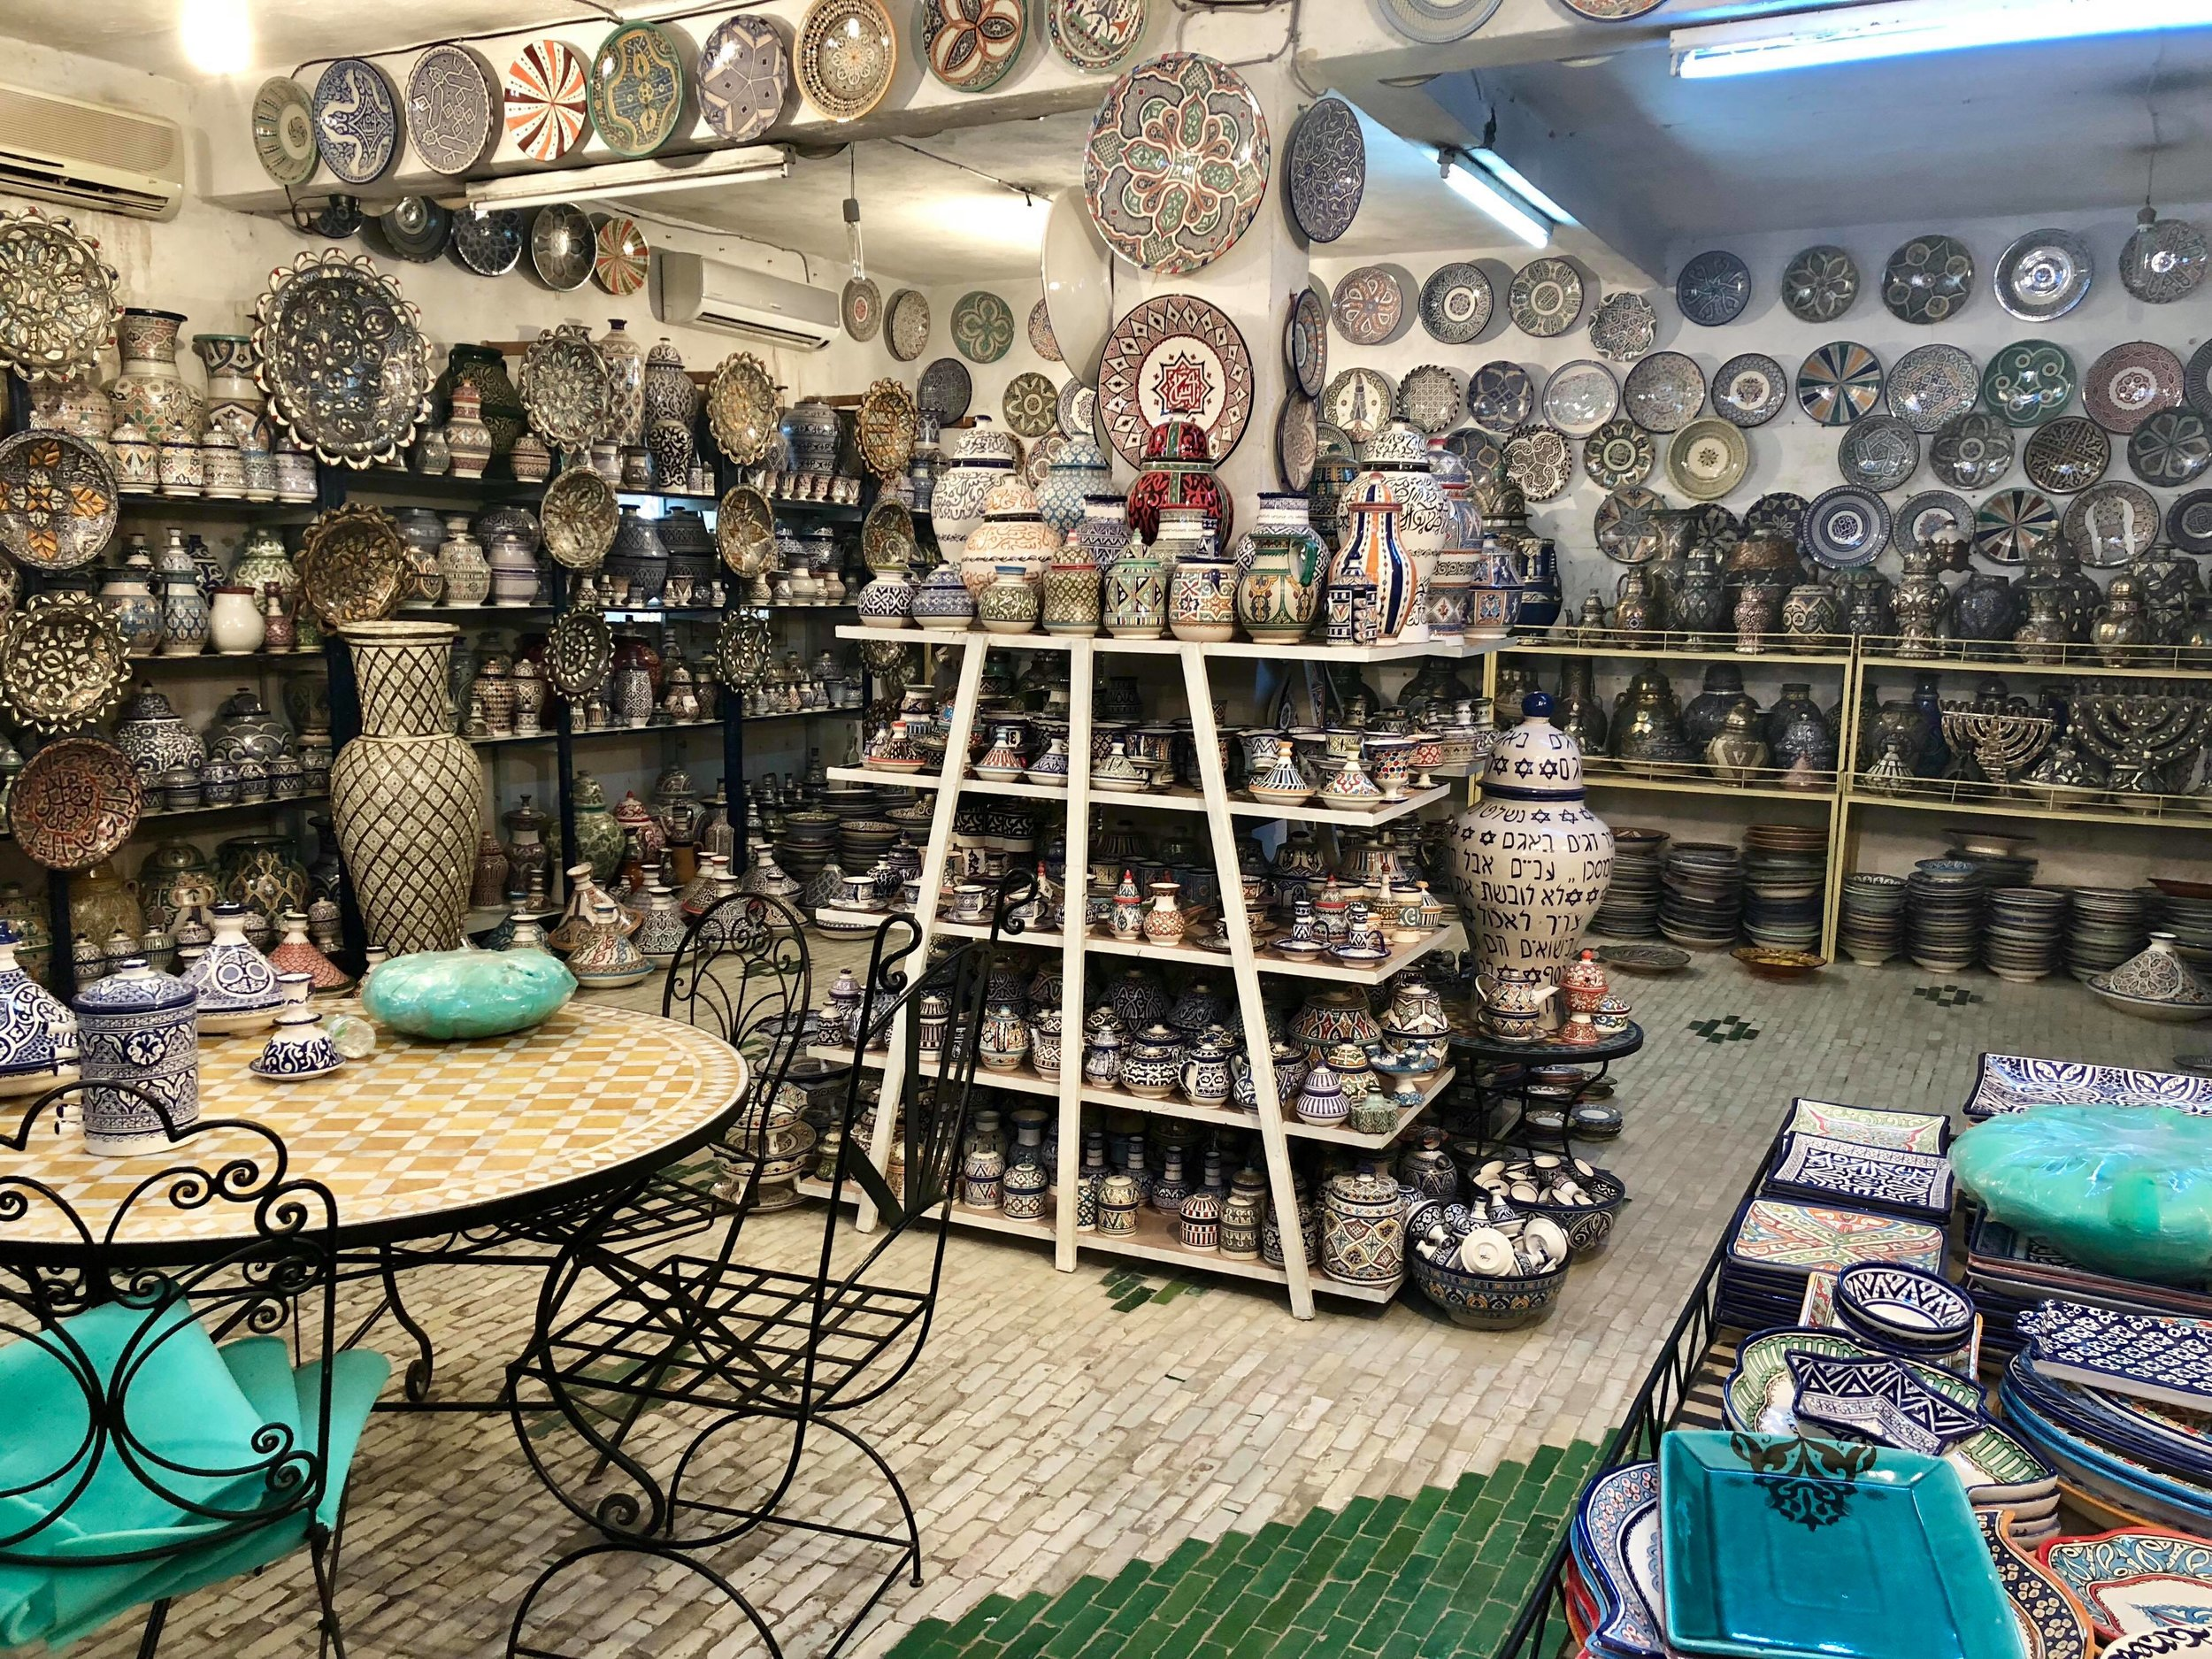 To give an idea of cost, a mosaic dining/patio table such as the one seen below can cost upwards of $2,000 US dollars. Handmade-in-Morocco